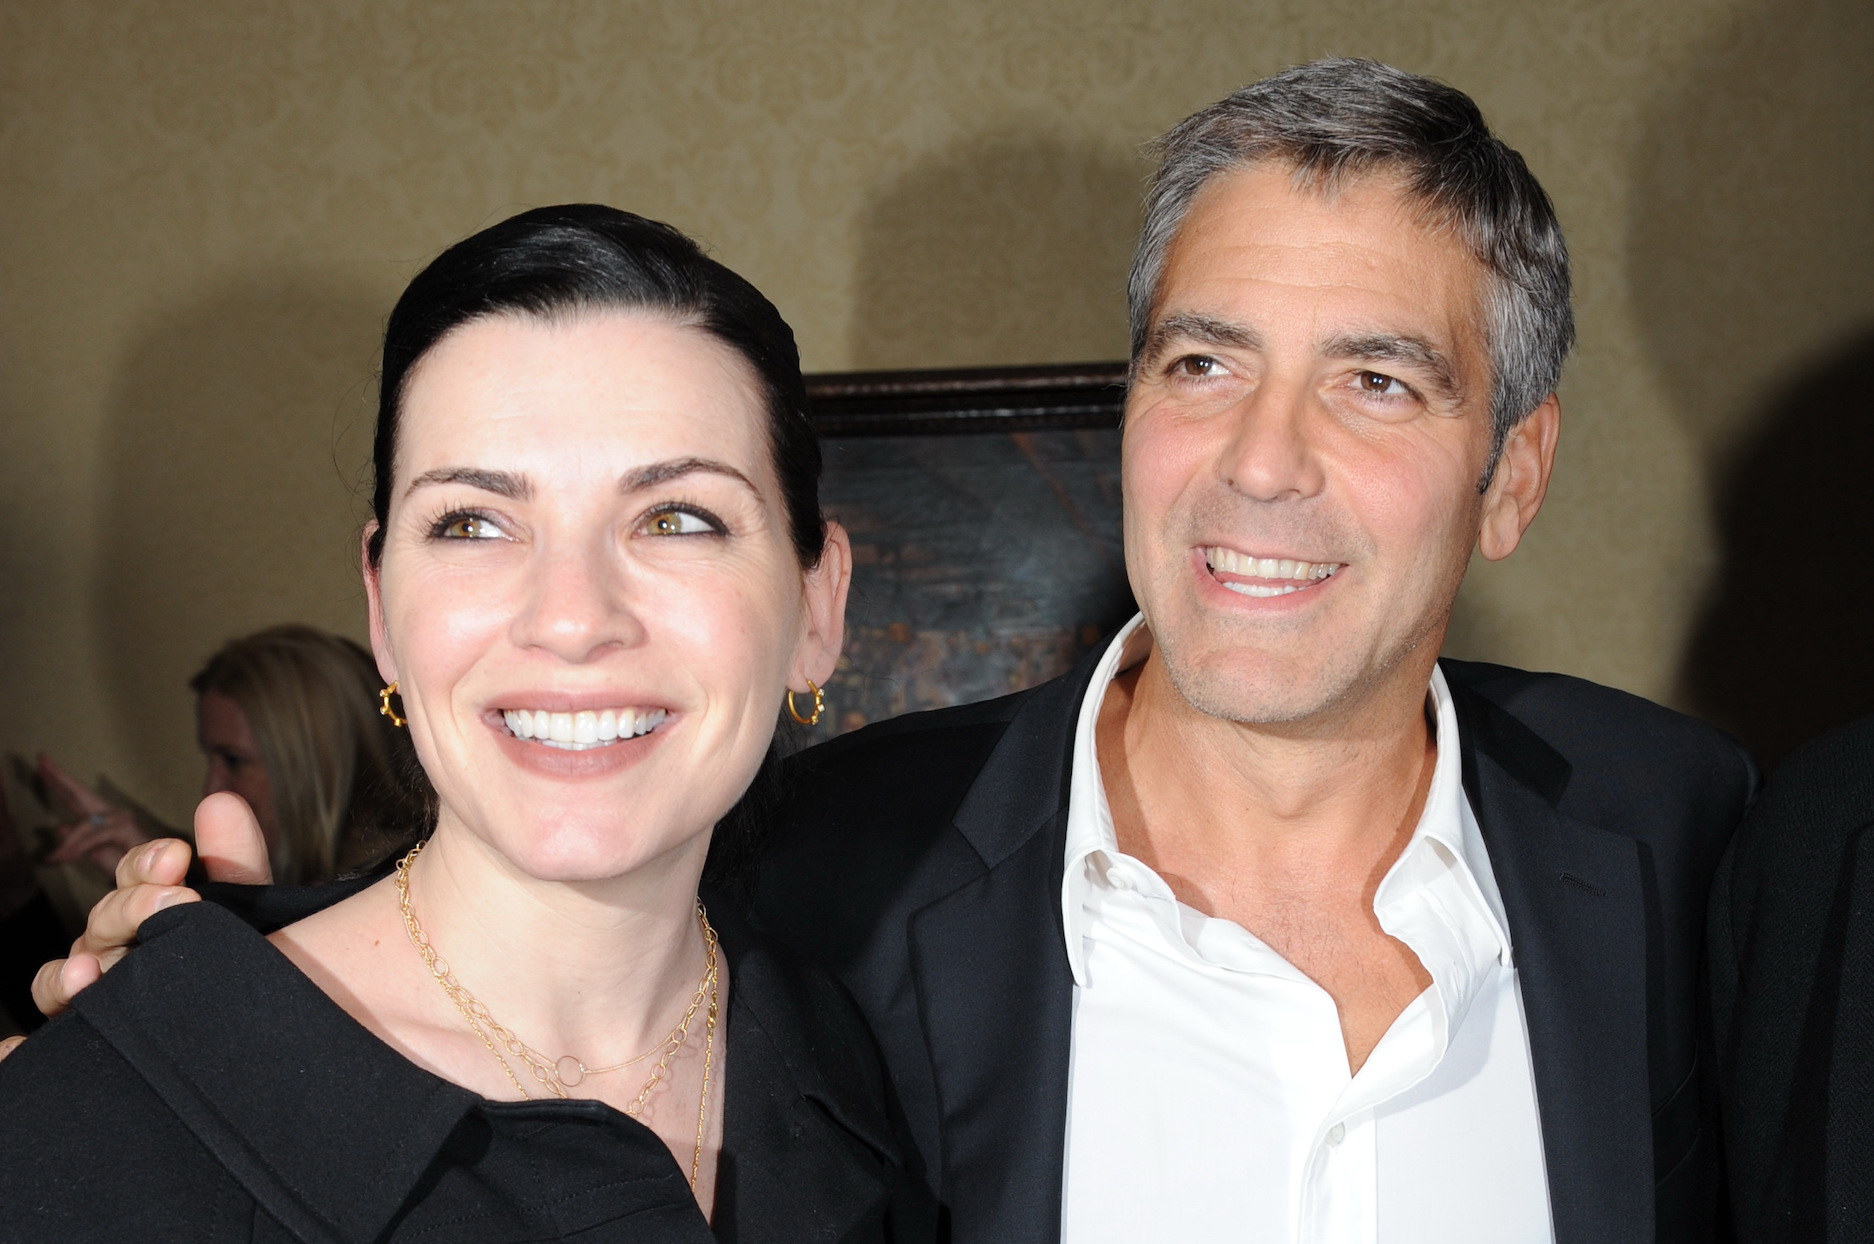 George Clooney Julianna Margulies - LEAD